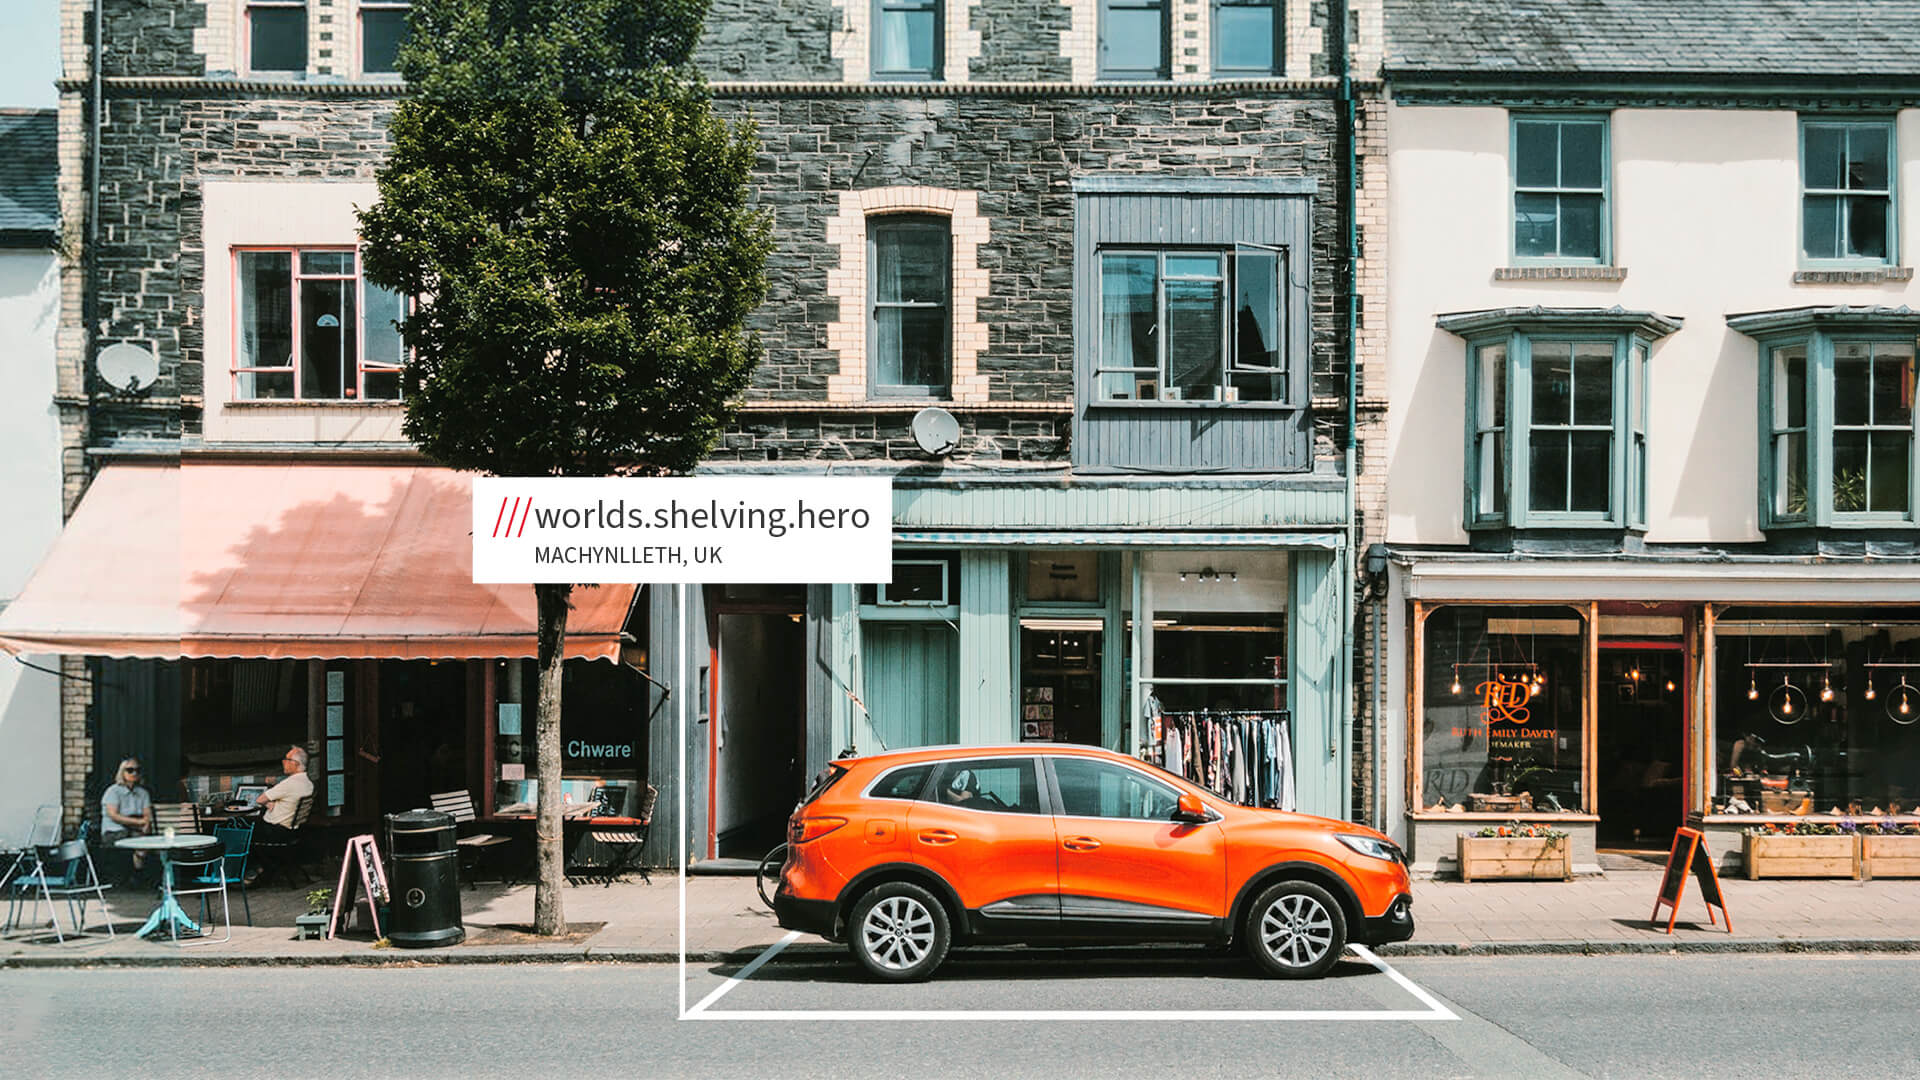 Car with what3words address - parked in shopping street